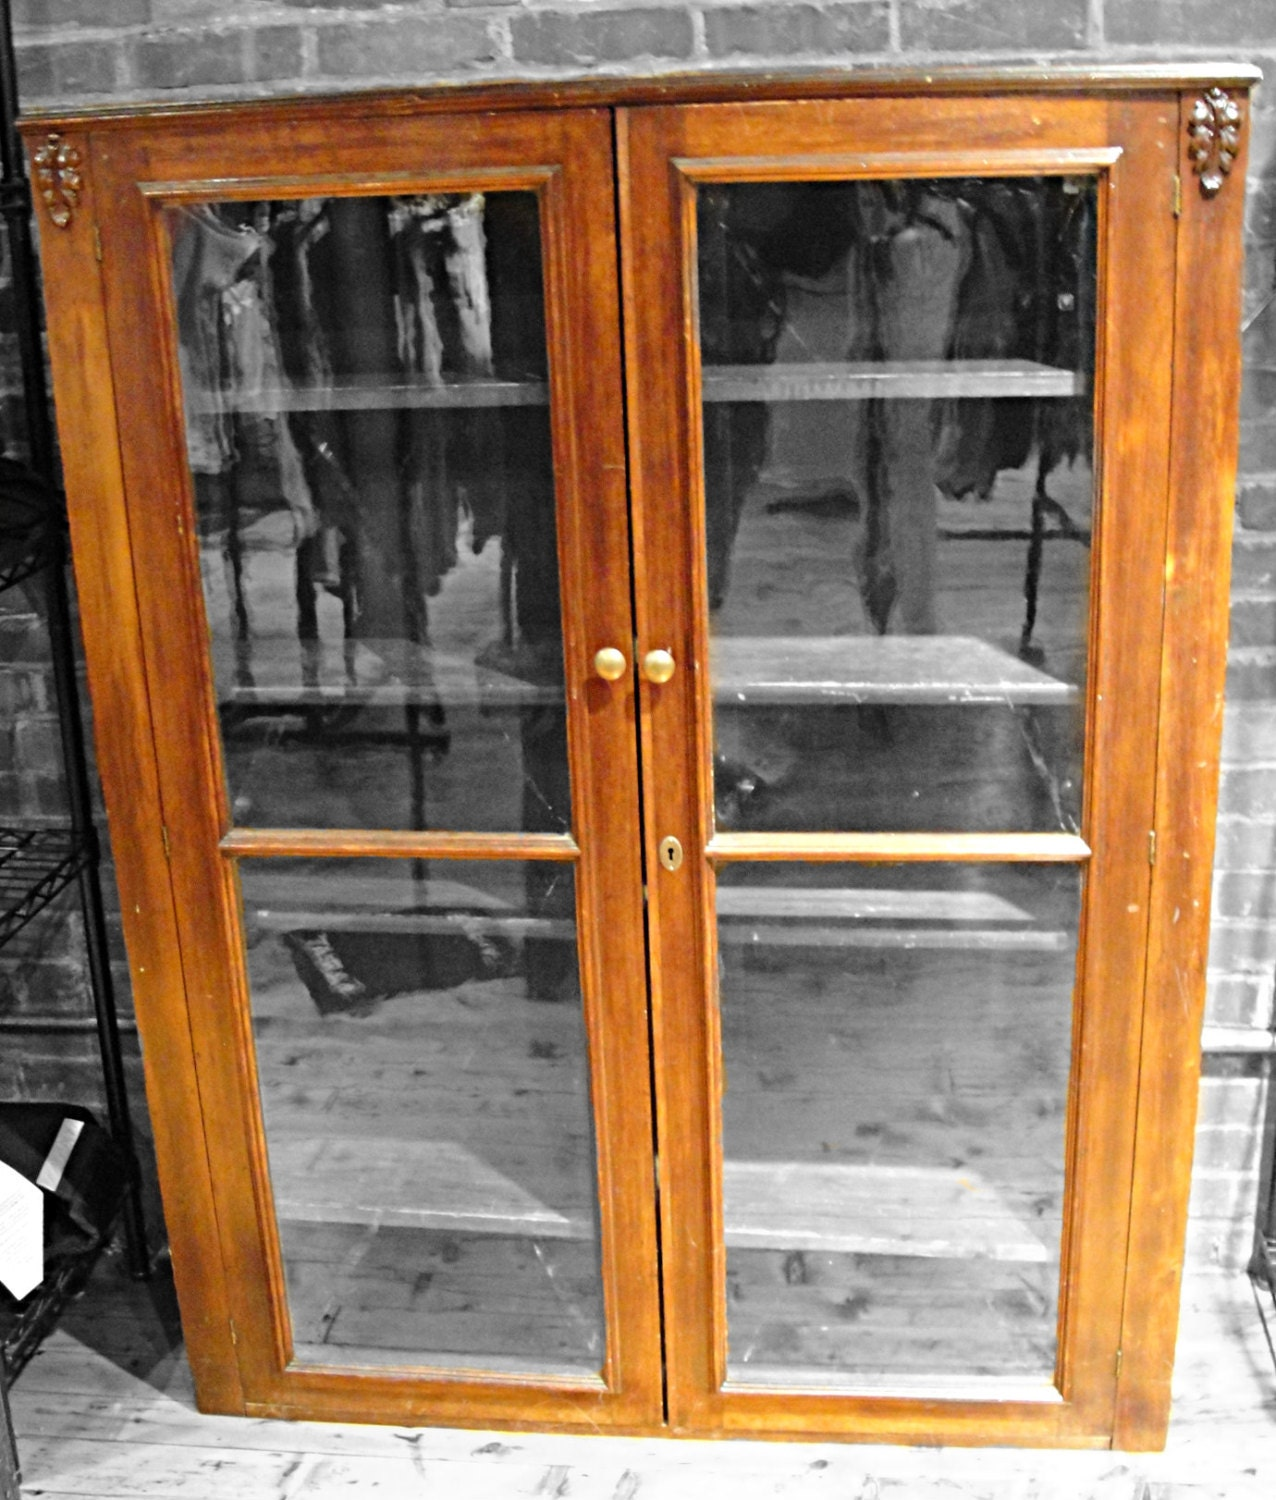 1500 #C77804 Vintage Bookcase Glass Doors Wood Filigree By RustyNailDesign picture/photo Wood Glass Doors 41591276